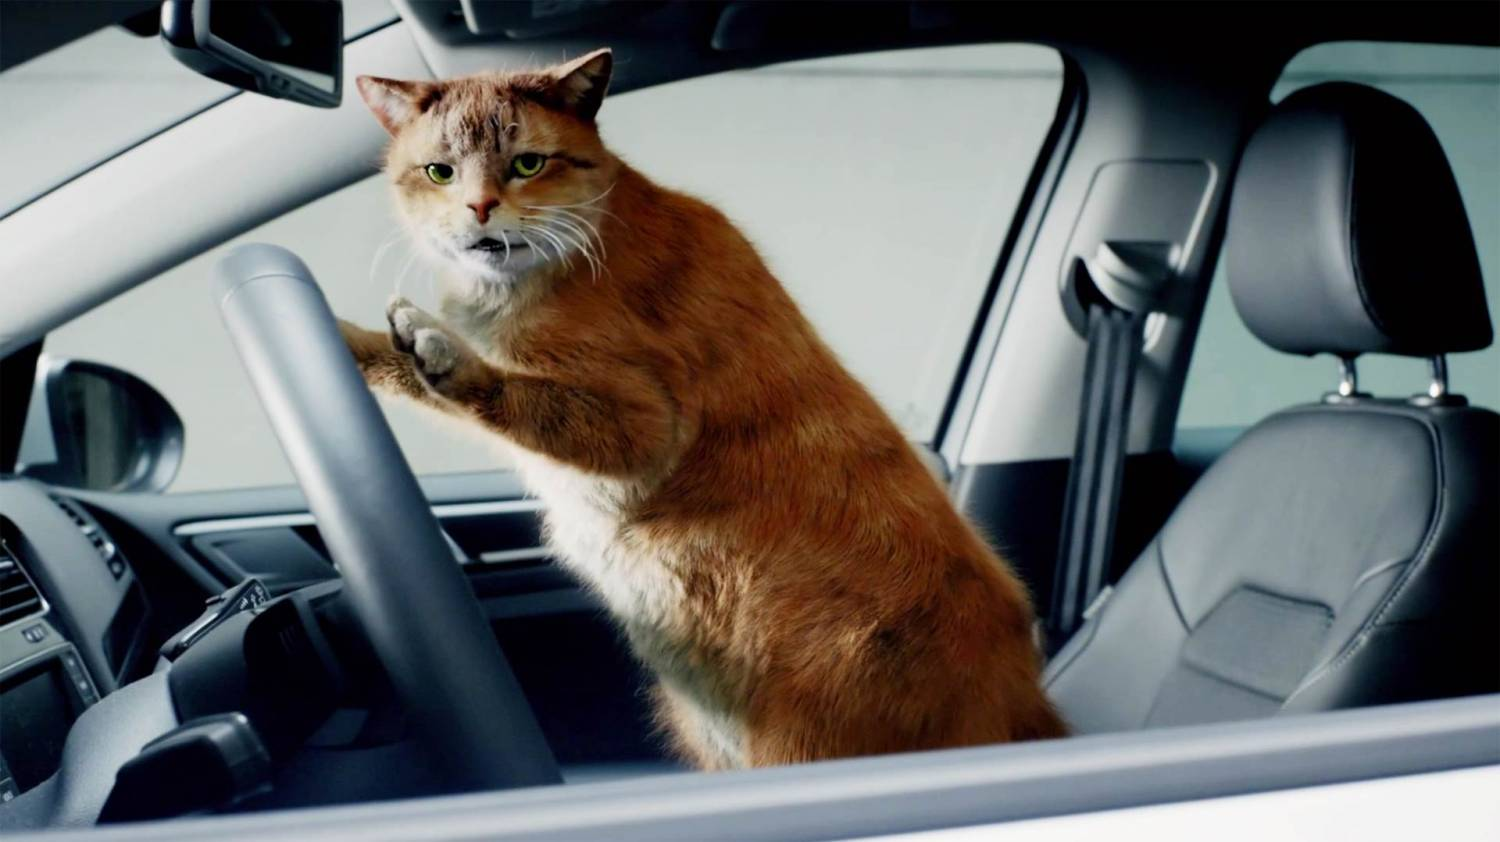 Музыка и видео из рекламы Volkswagen - Cat